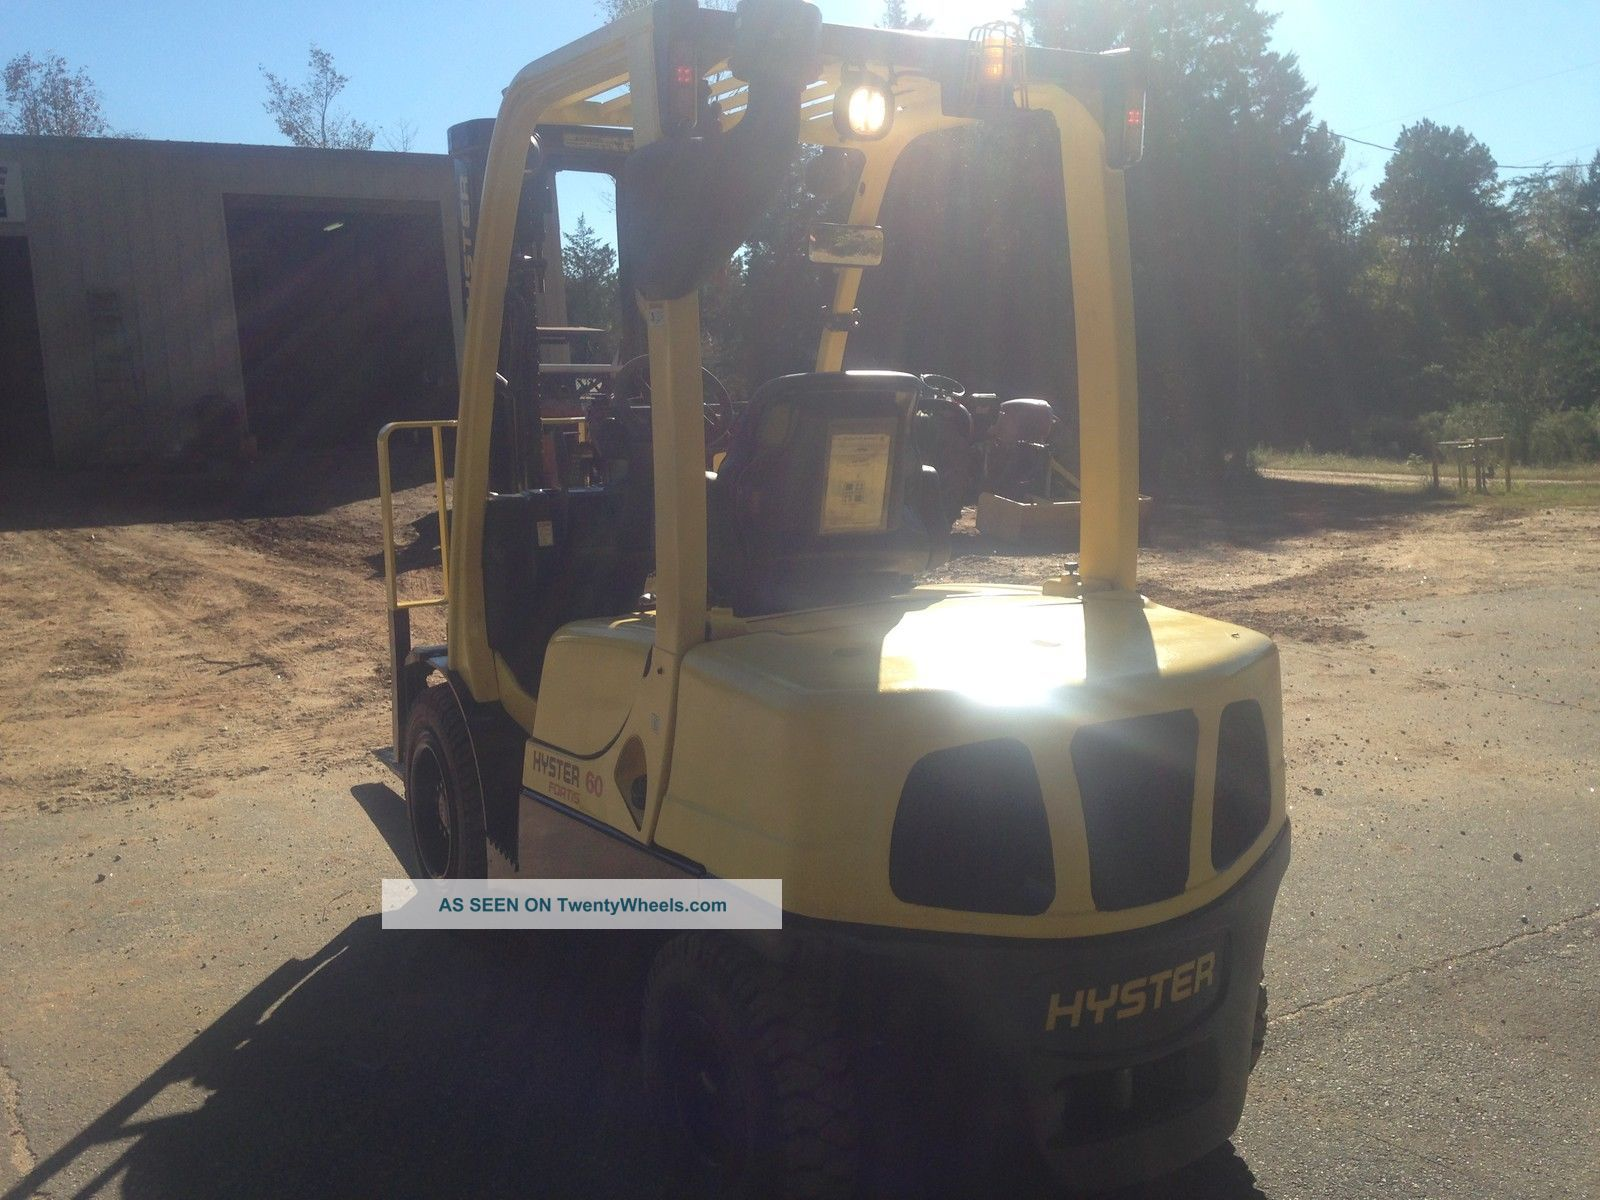 Hyster fortis photo - 1